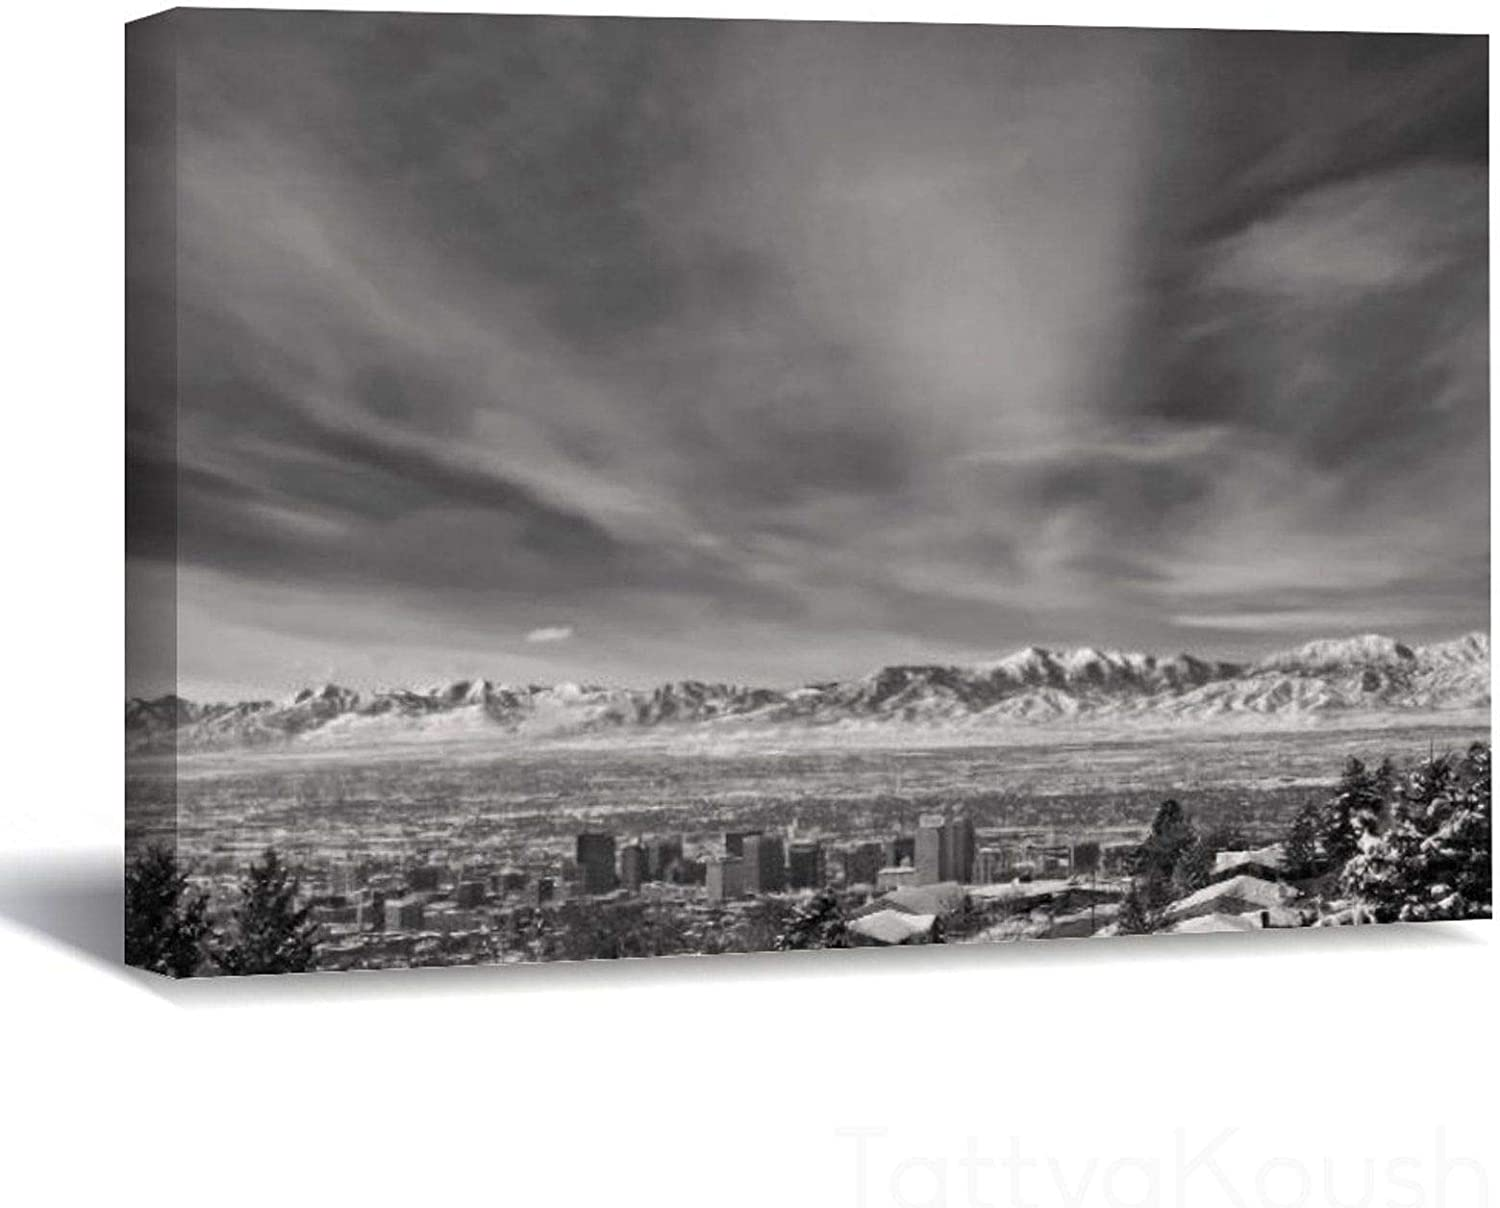 Canvas Prints Wall Art Paintings Salt Lake City Utah Black And White Wall Artworks Pictures For Living Room Bedroom 16x24 Inch Home Bathroom Wall Decor Posters Posters Prints